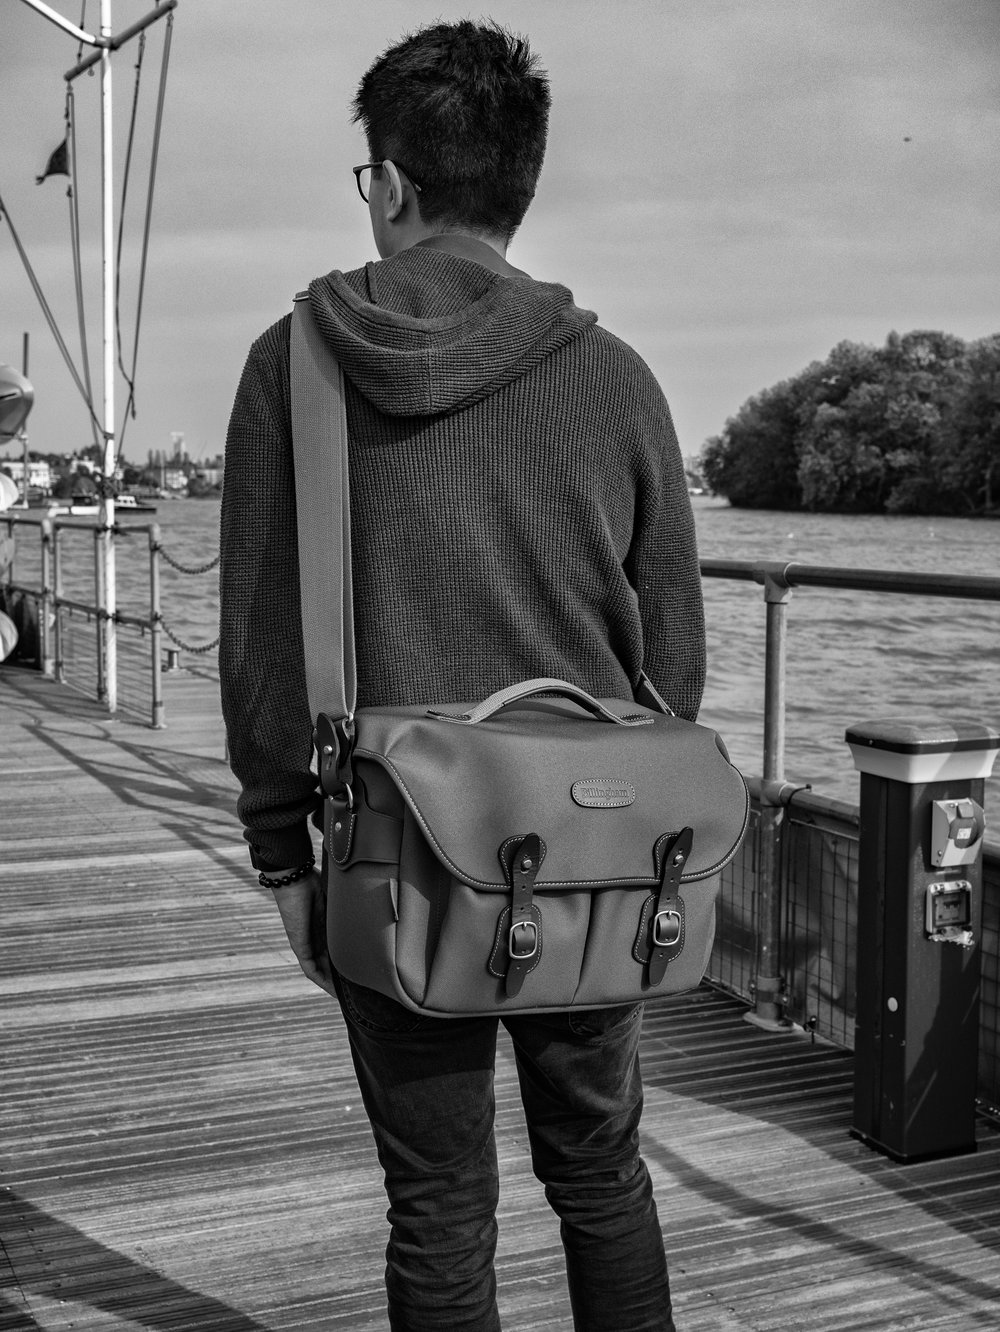 The Hadley One is about as big a system bag I would wish to carry   — but it does its job well